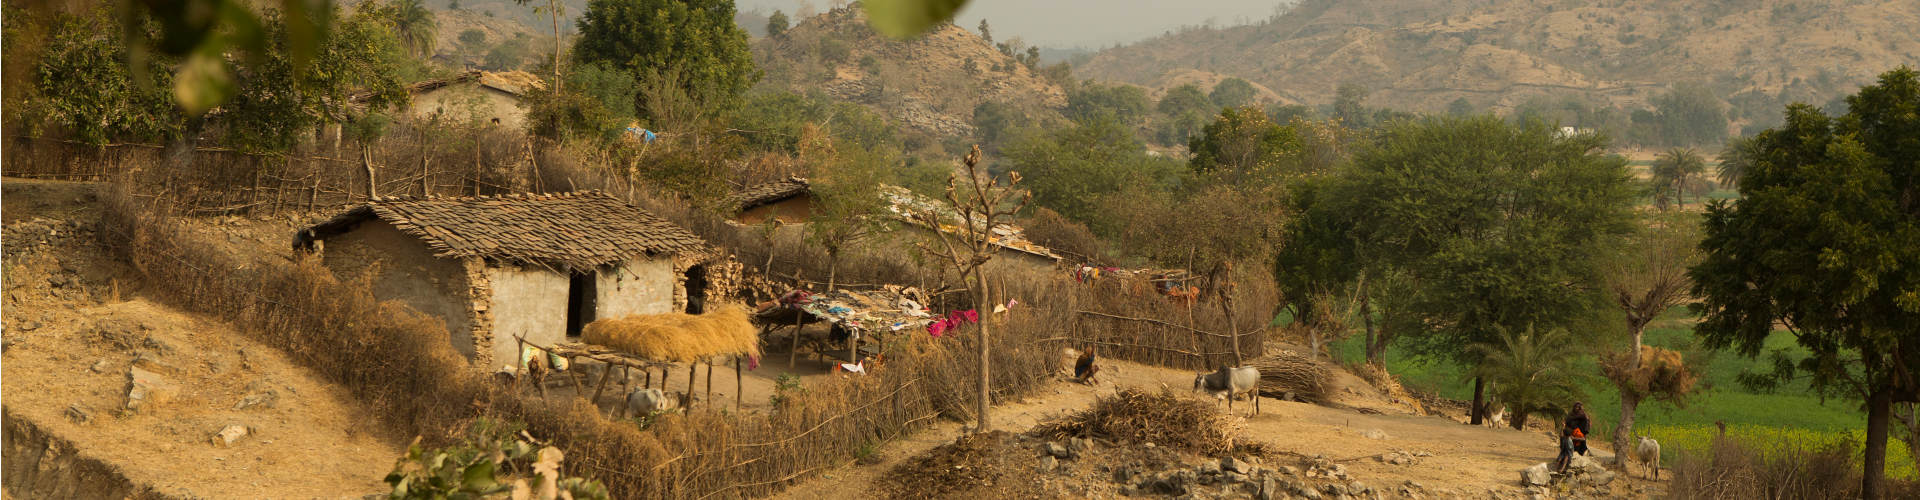 Landschaft in Indien